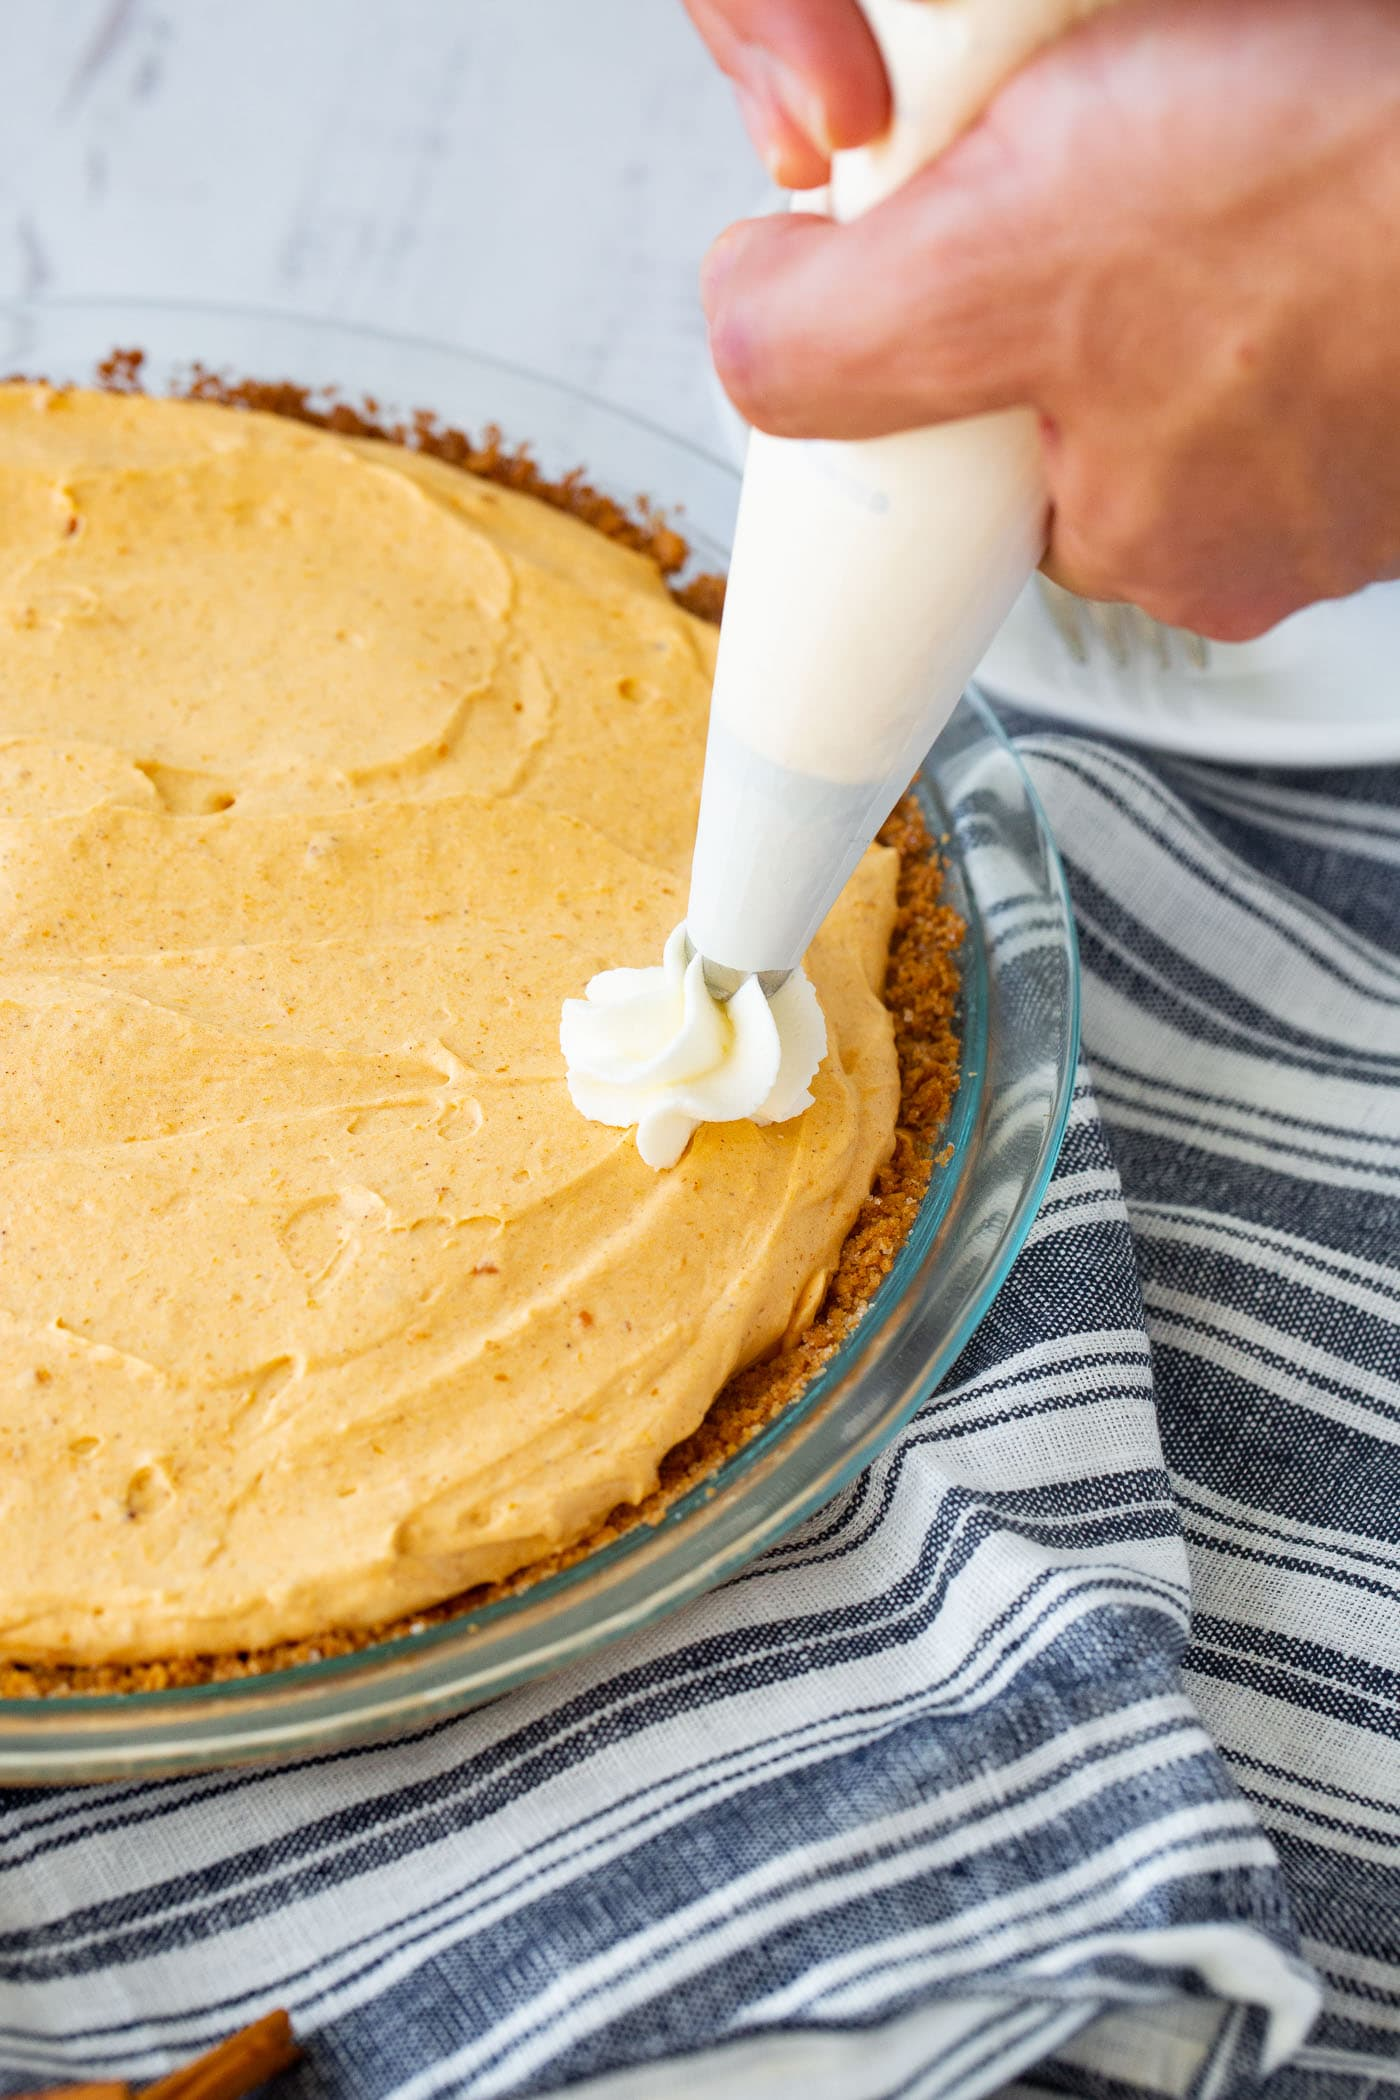 A photo of a no bake pumpkin pie with swirls of whipped cream being piped on top.